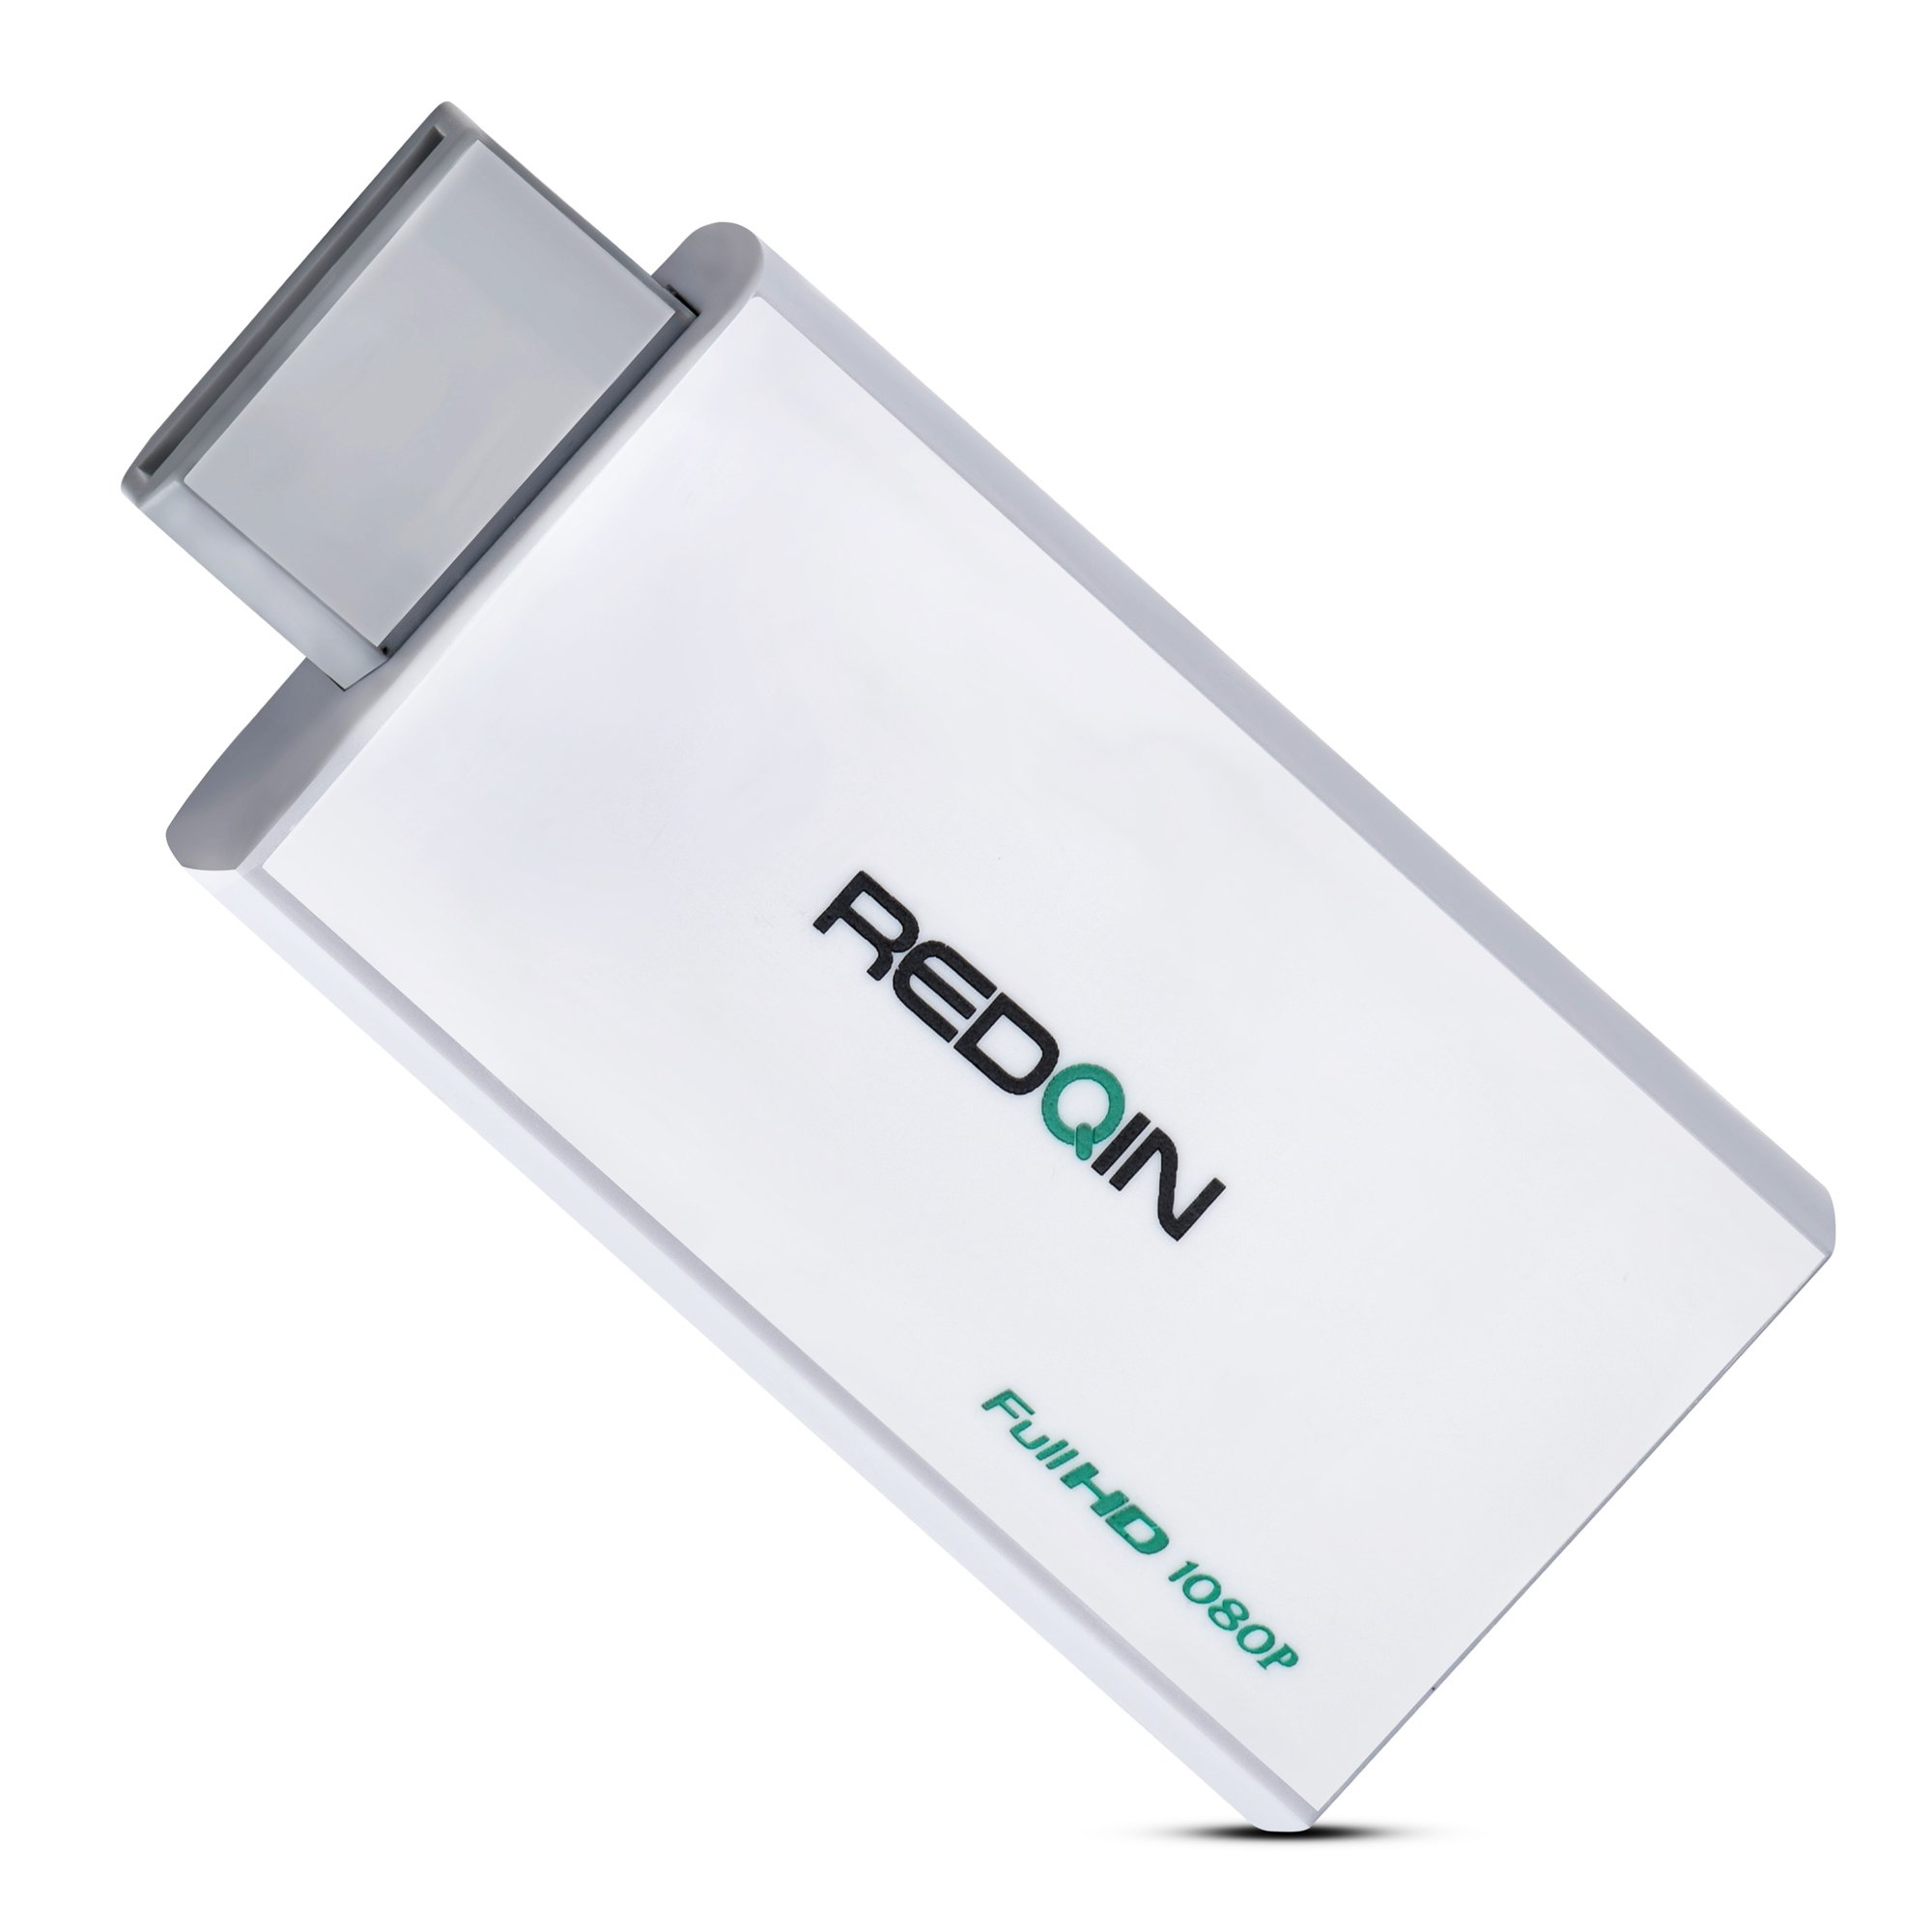 Wii to HDMI Converter Adapter, Output Video & 3.5mm Audio - Supports All Wii Display Modes to 720P/1080P HDTV, Monitor by REDQIN